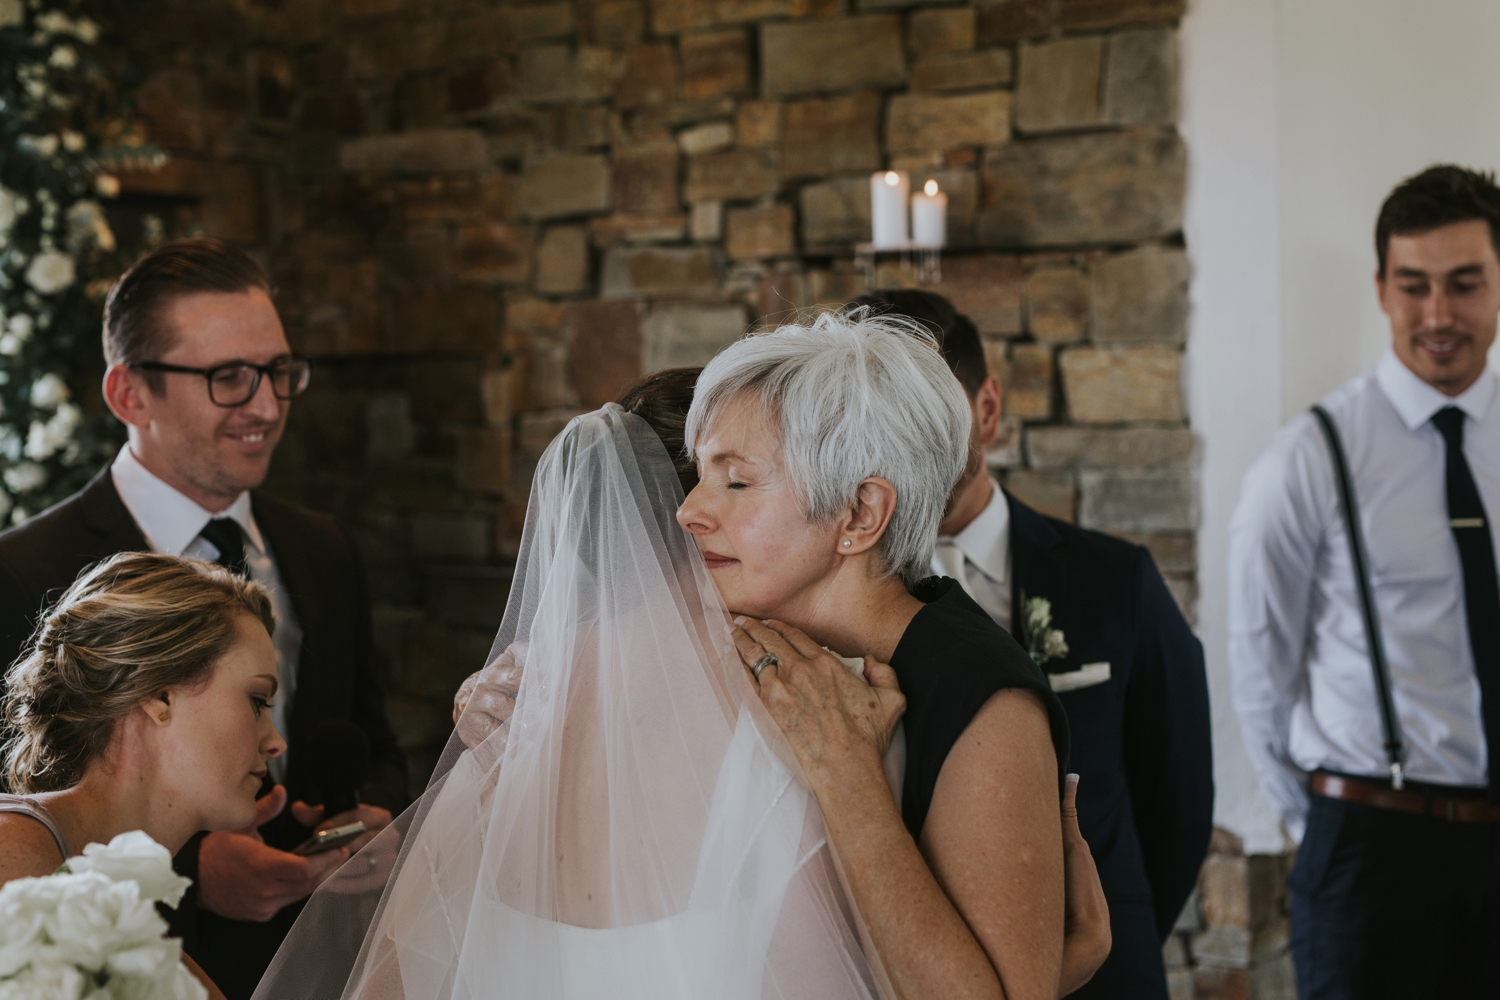 Candid and beautiful wedding moment of mother hugging her daughter after walking her daughter, the bride, down the aisle at Netherwood Wedding Venue in the Natal Midlands